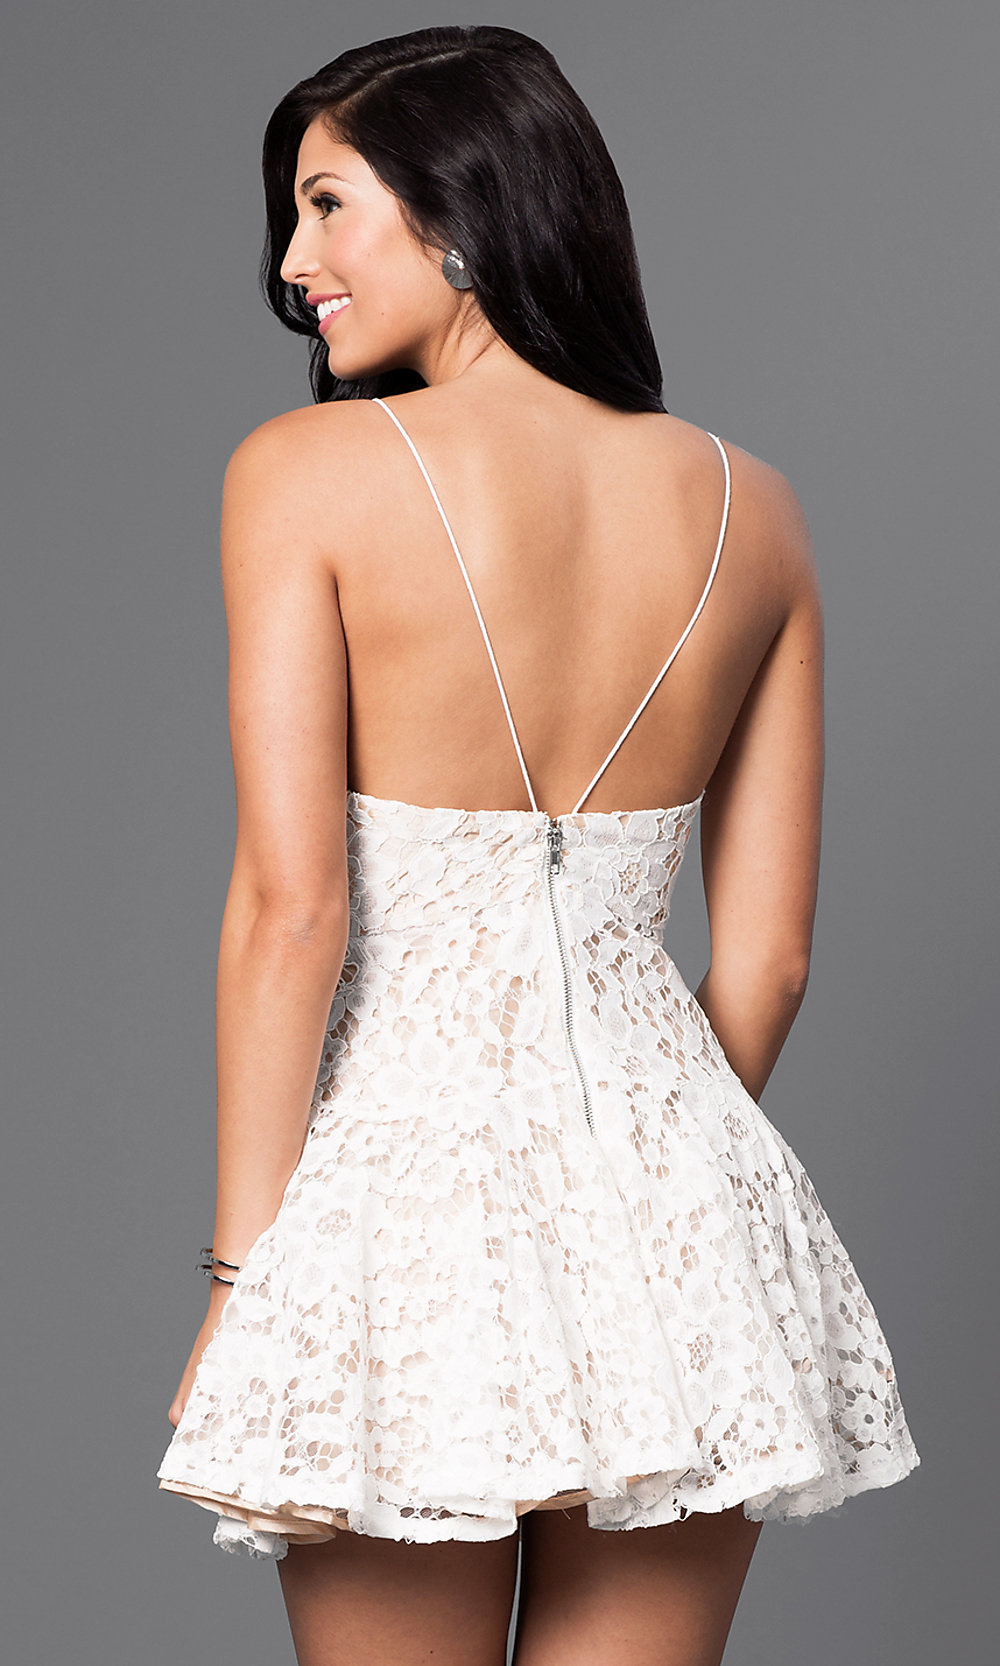 lace party dress with spaghetti straps promgirl